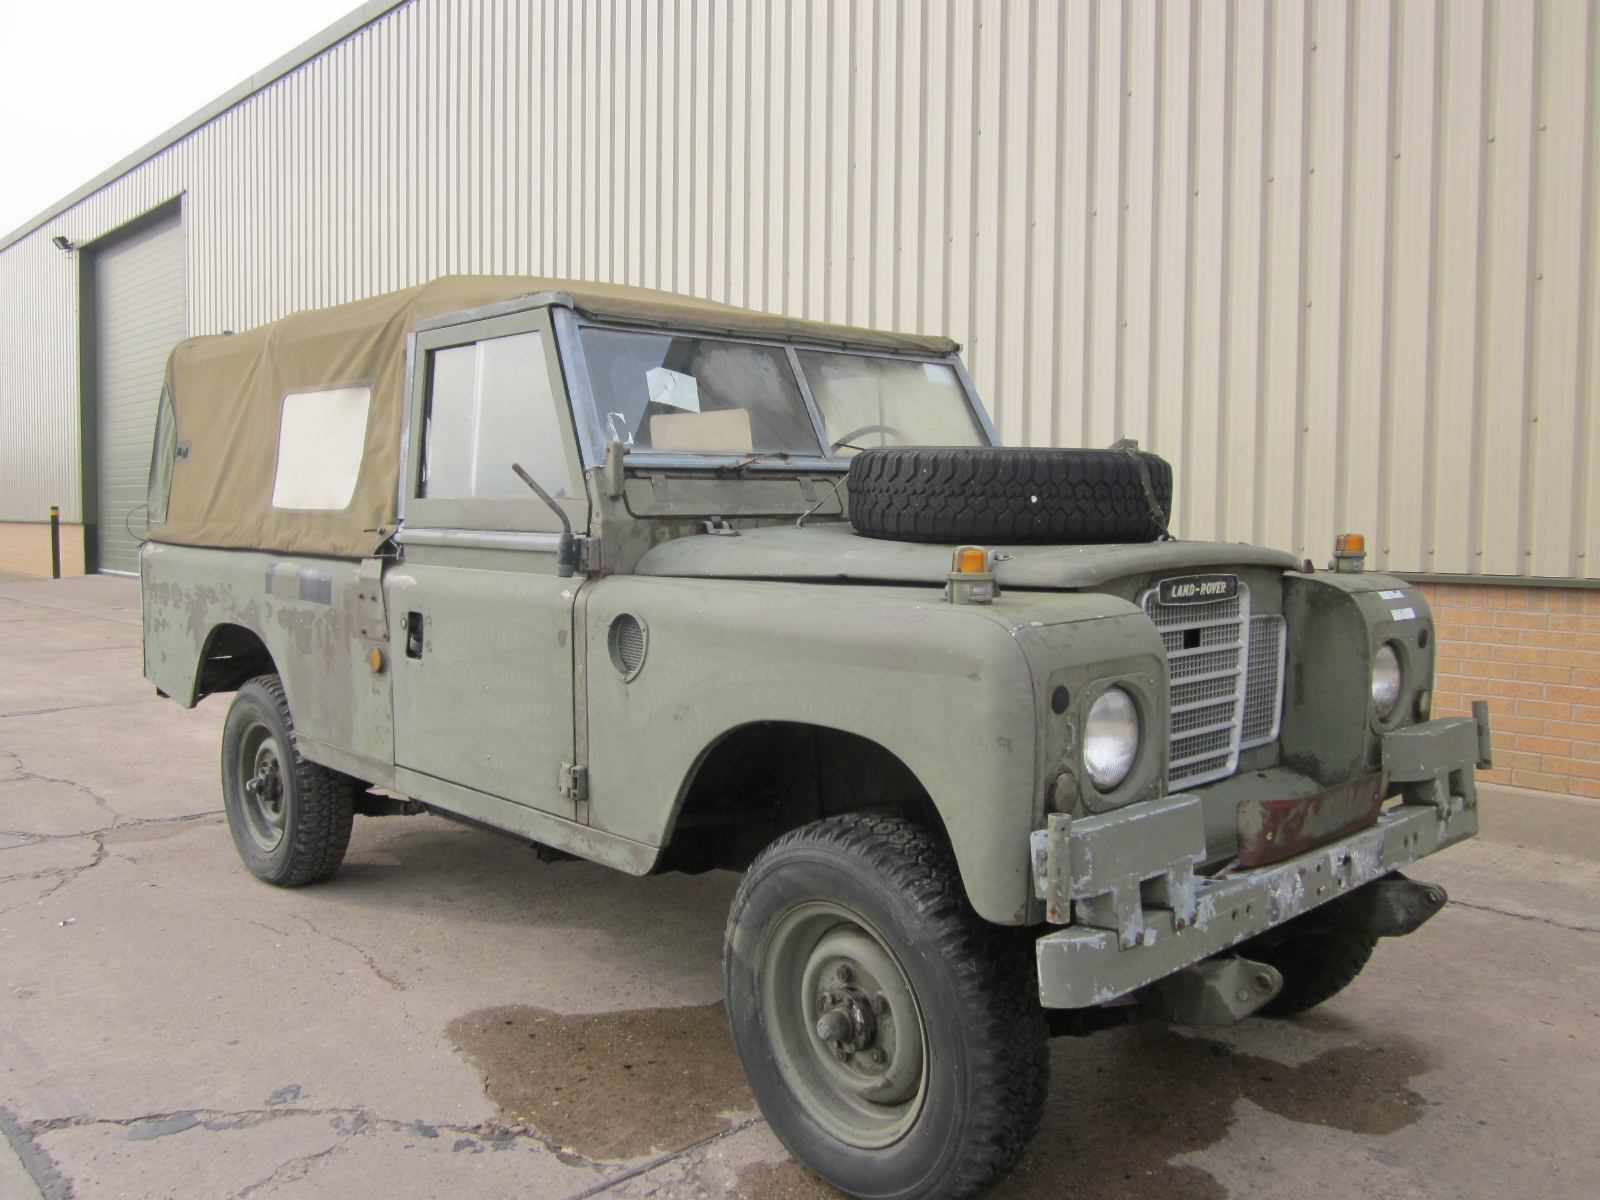 Land Rover Series III 109 LHD LWB soft tops sel for sale in